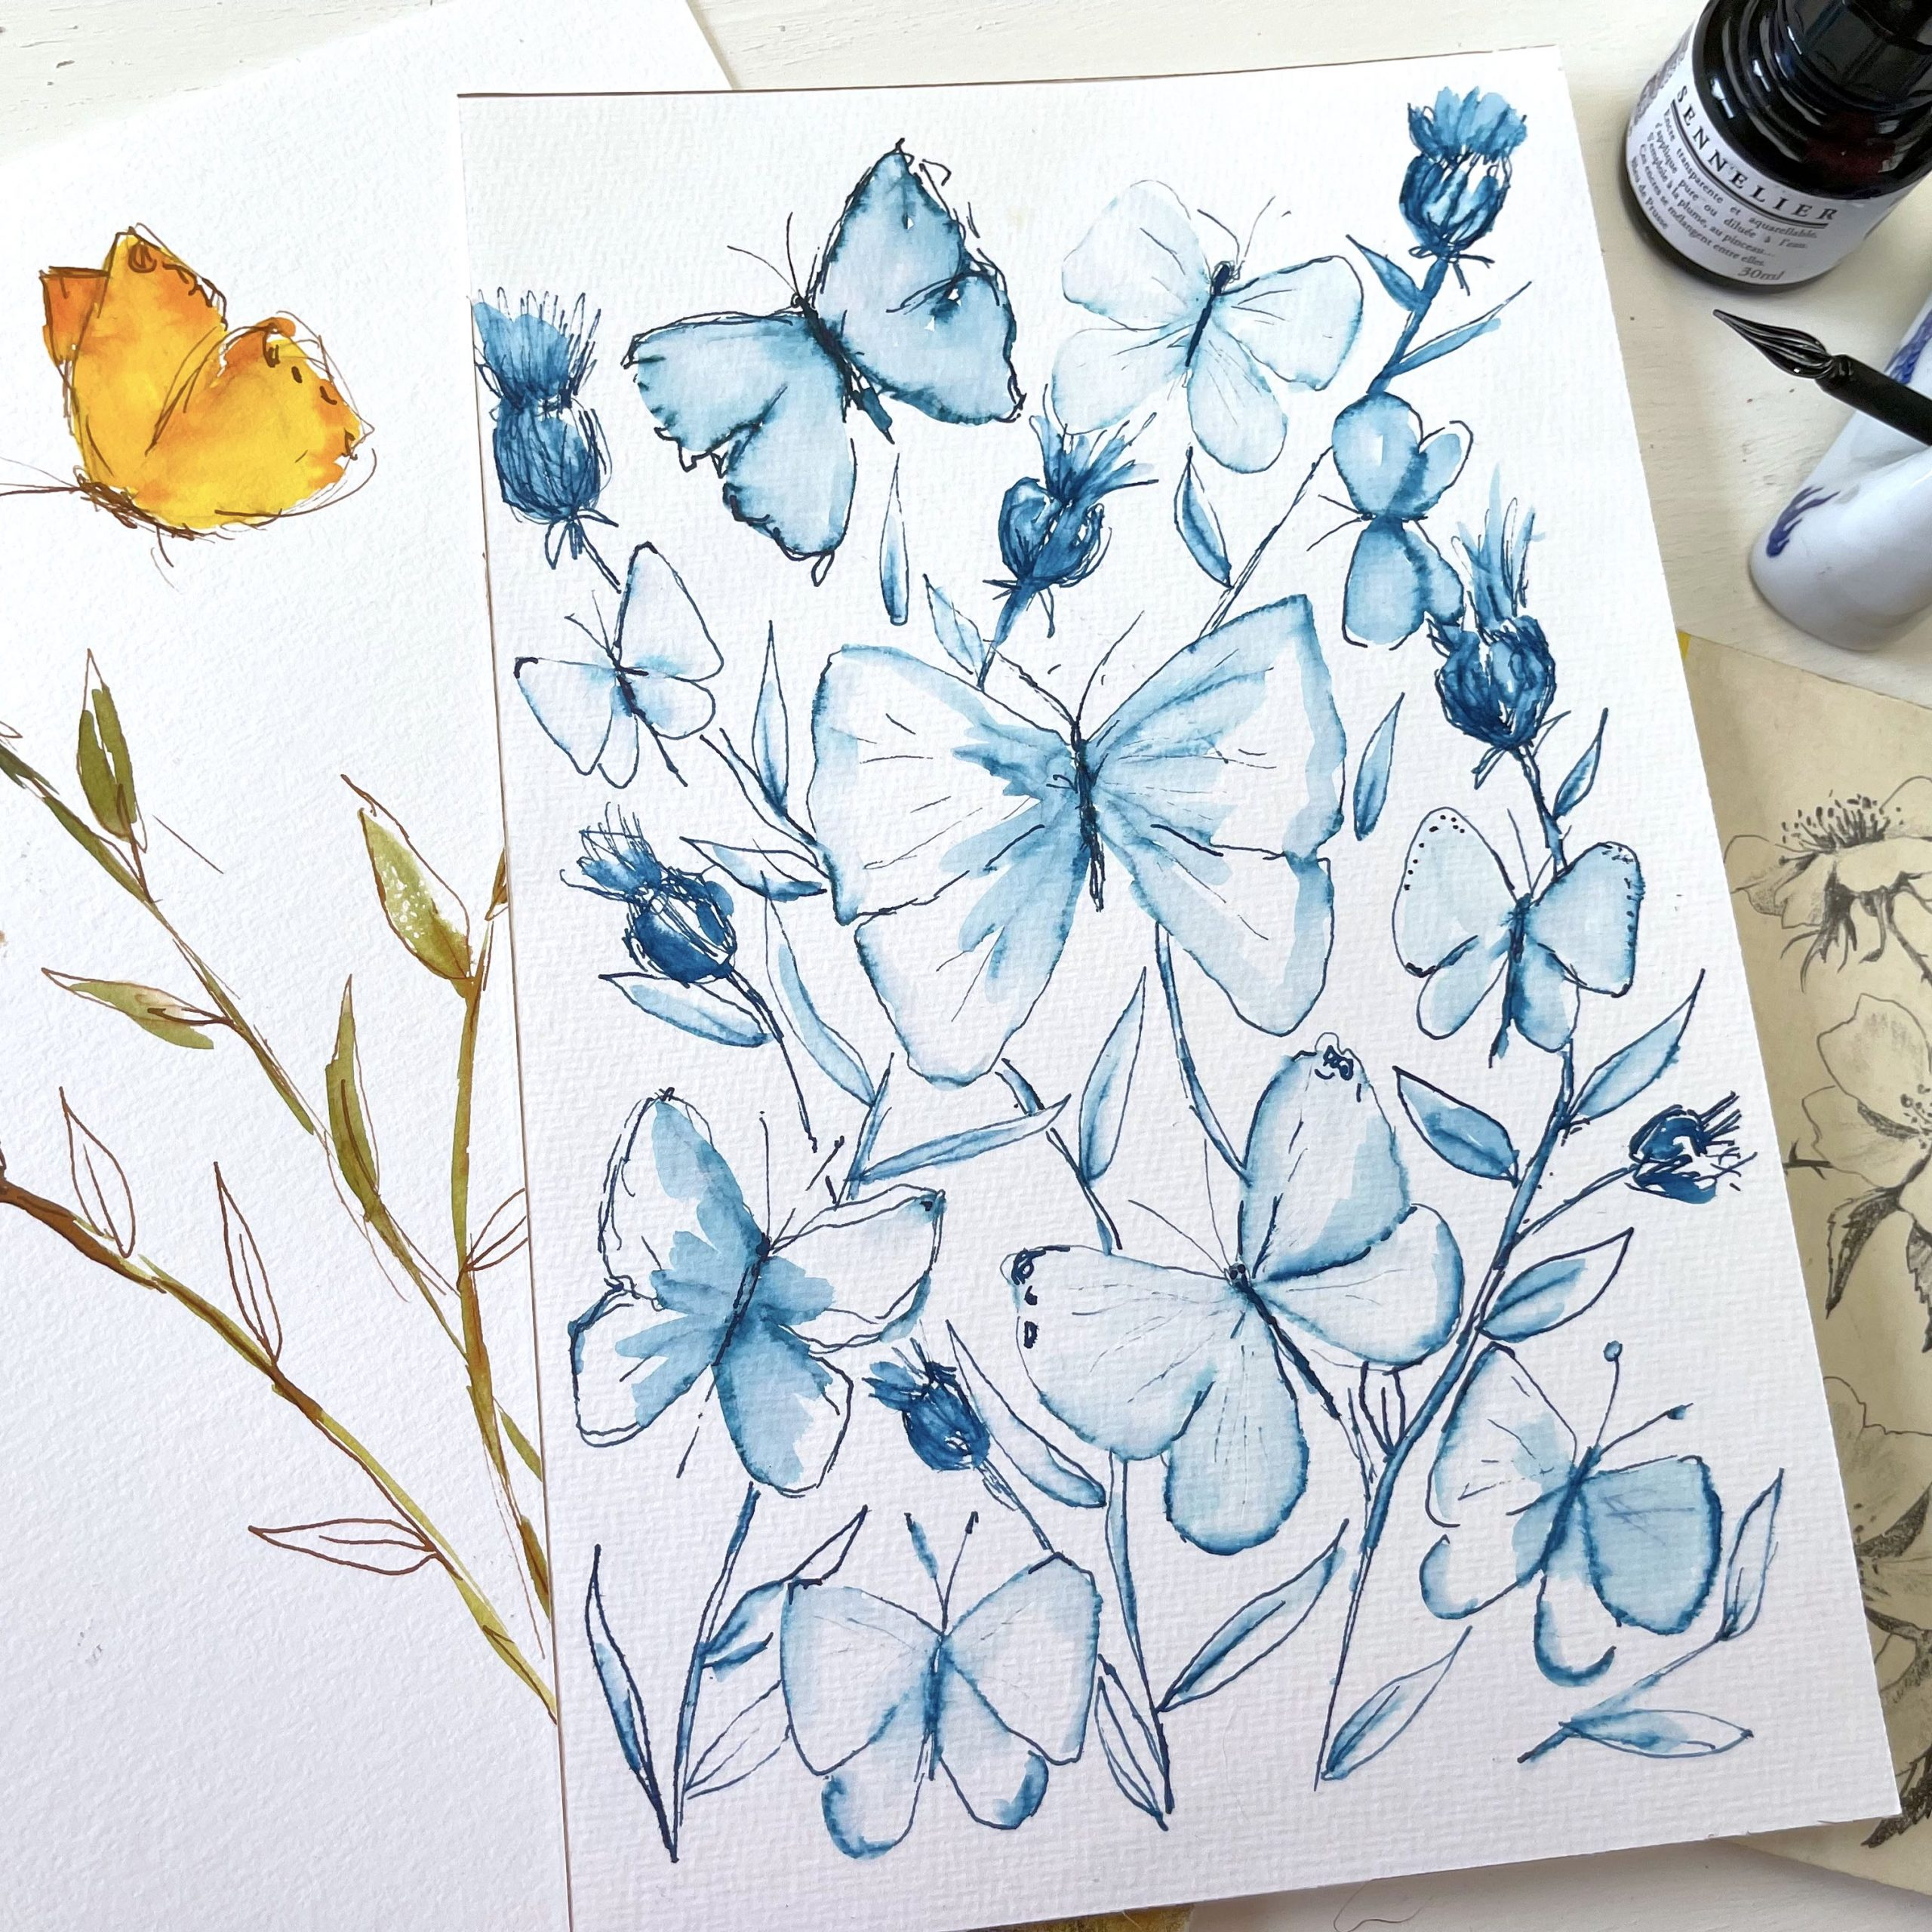 Watercolor painting of blue butterflies with sennelier ink and glass pen